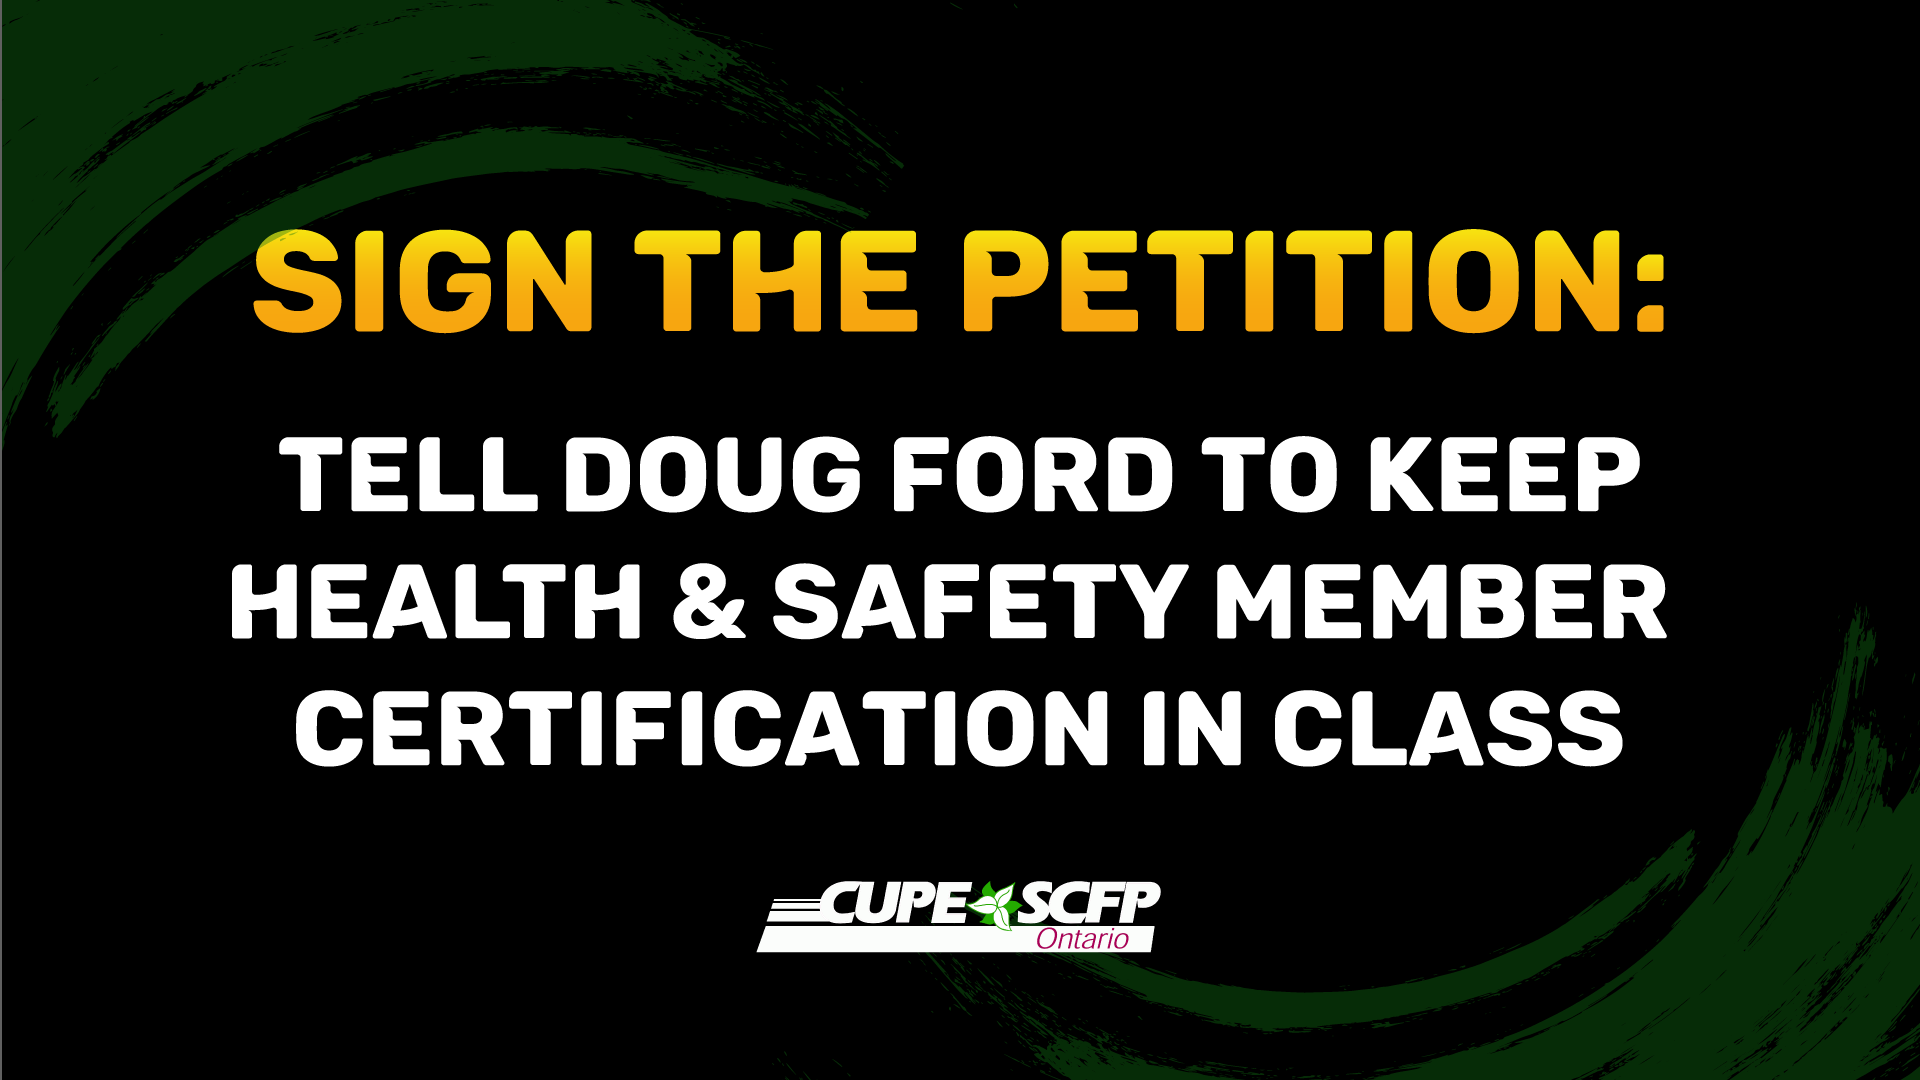 Sign the Petition: Tell Doug Ford to Keep Health & Safety Member Certification In Class